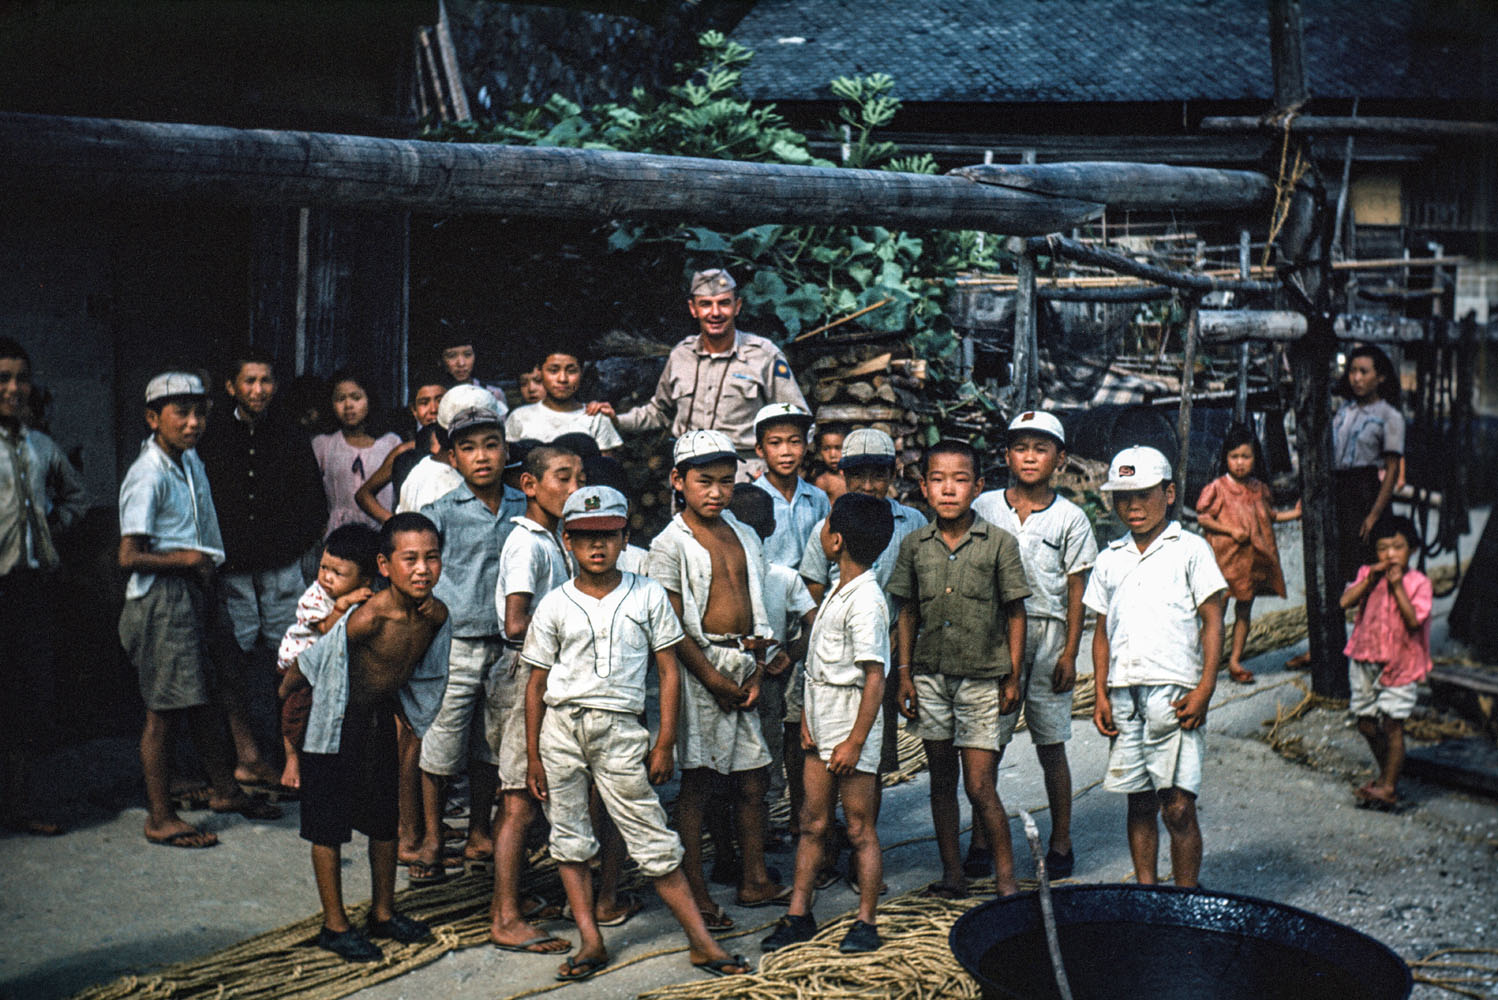 304-Group of Children with GI